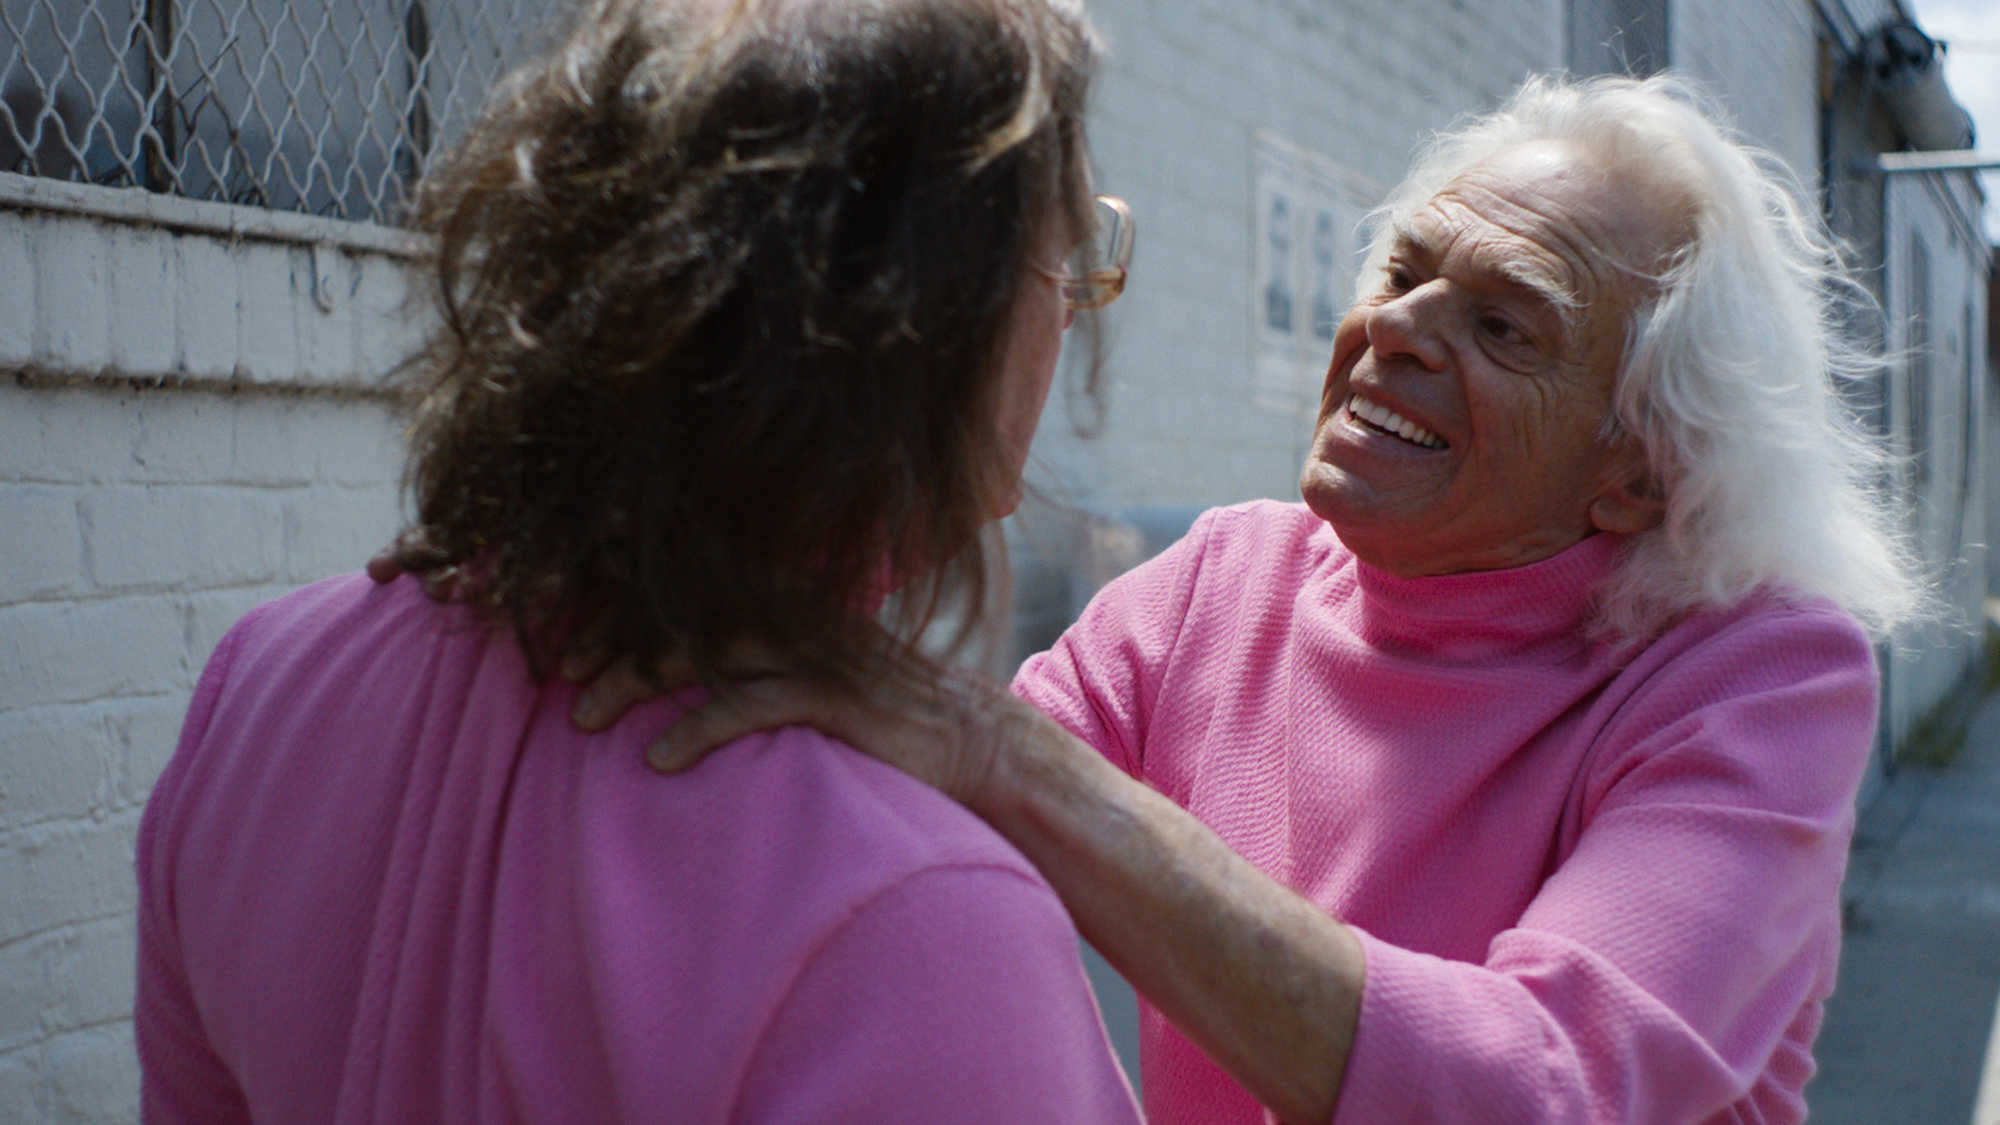 The Greasy Strangler (image 3)